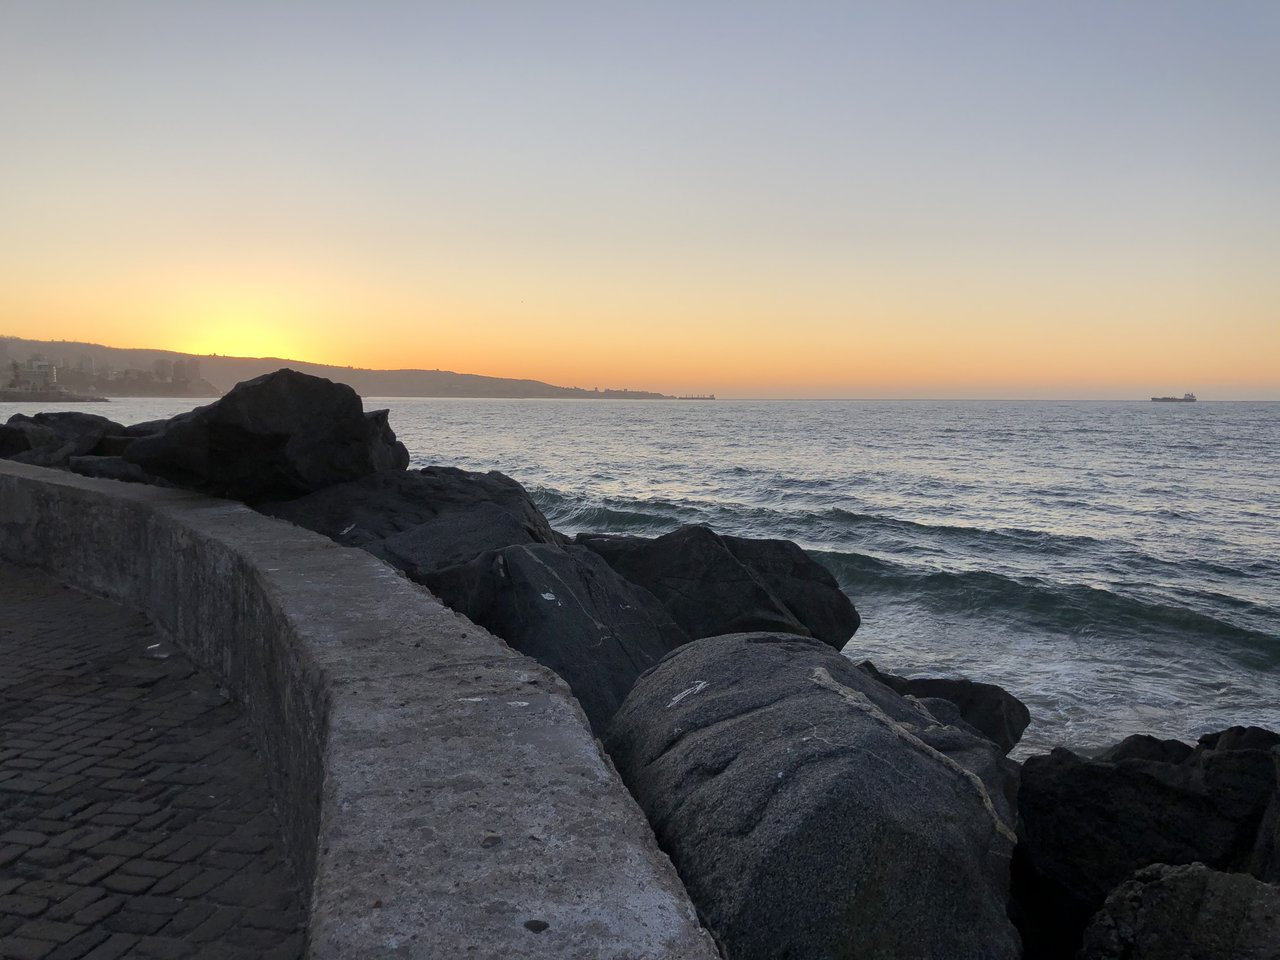 Sunset in Vina del Mar | Photo taken by Melody B